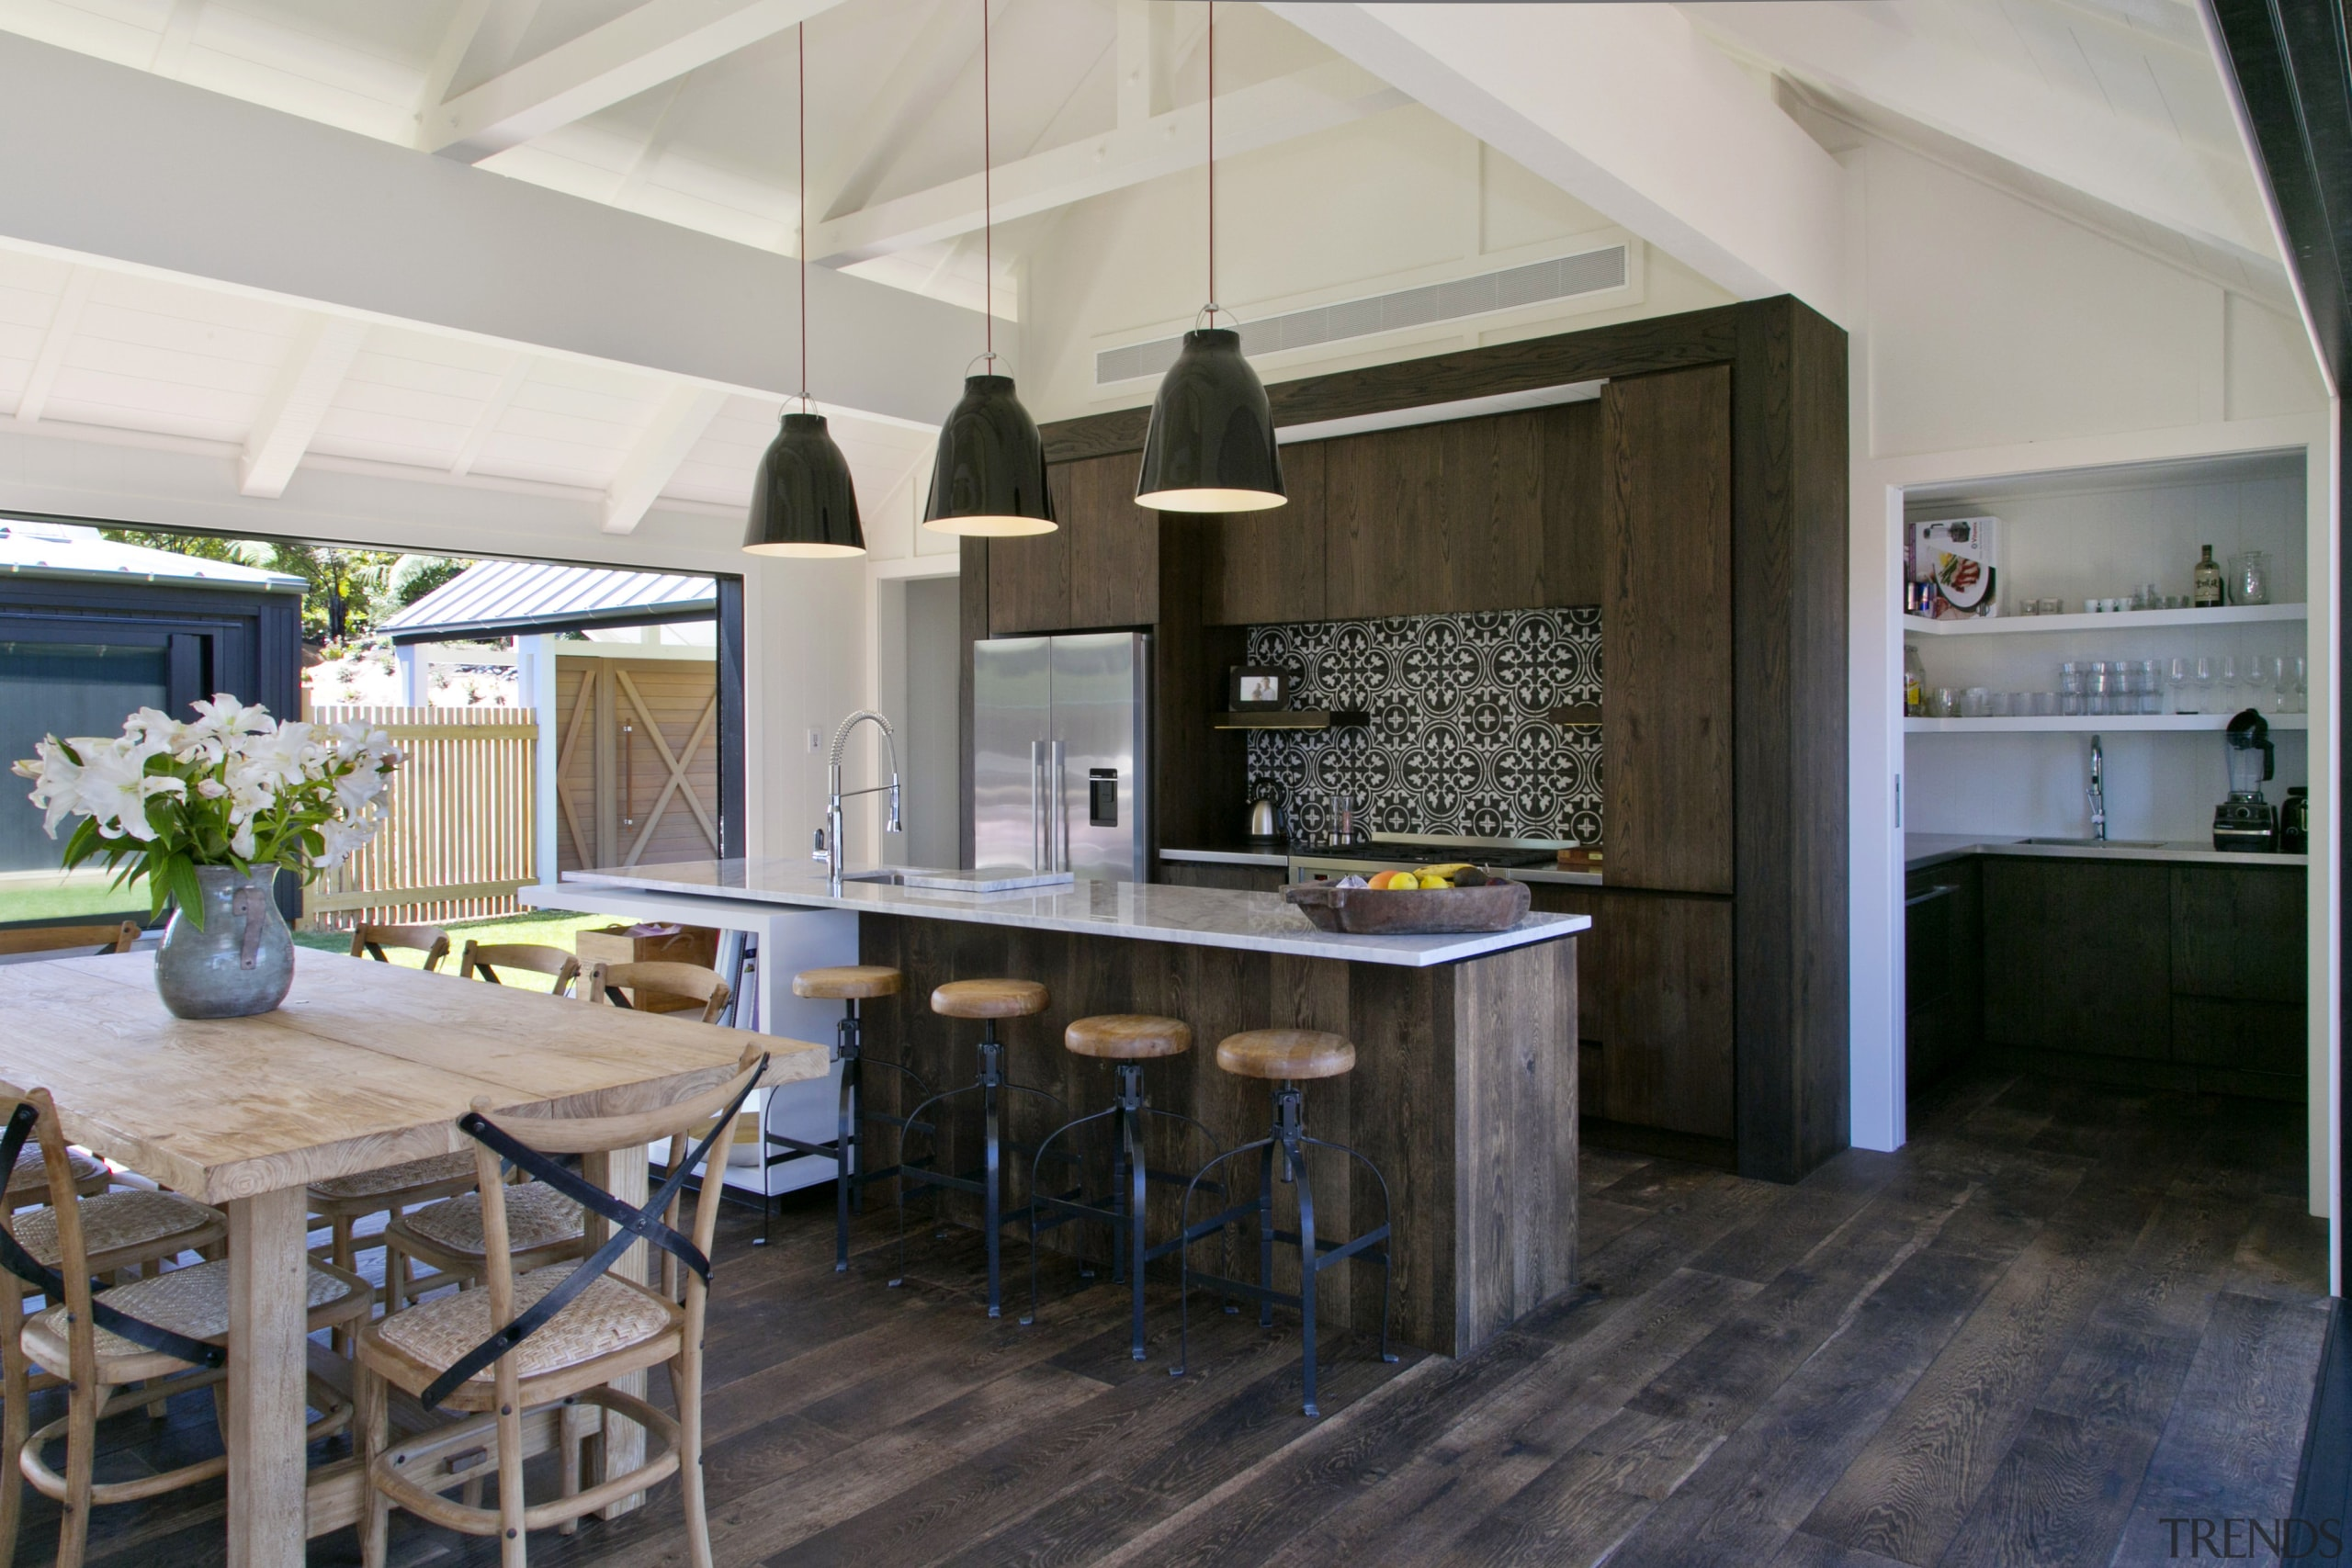 The pantry in this kitchen is designed to countertop, interior design, kitchen, real estate, gray, black